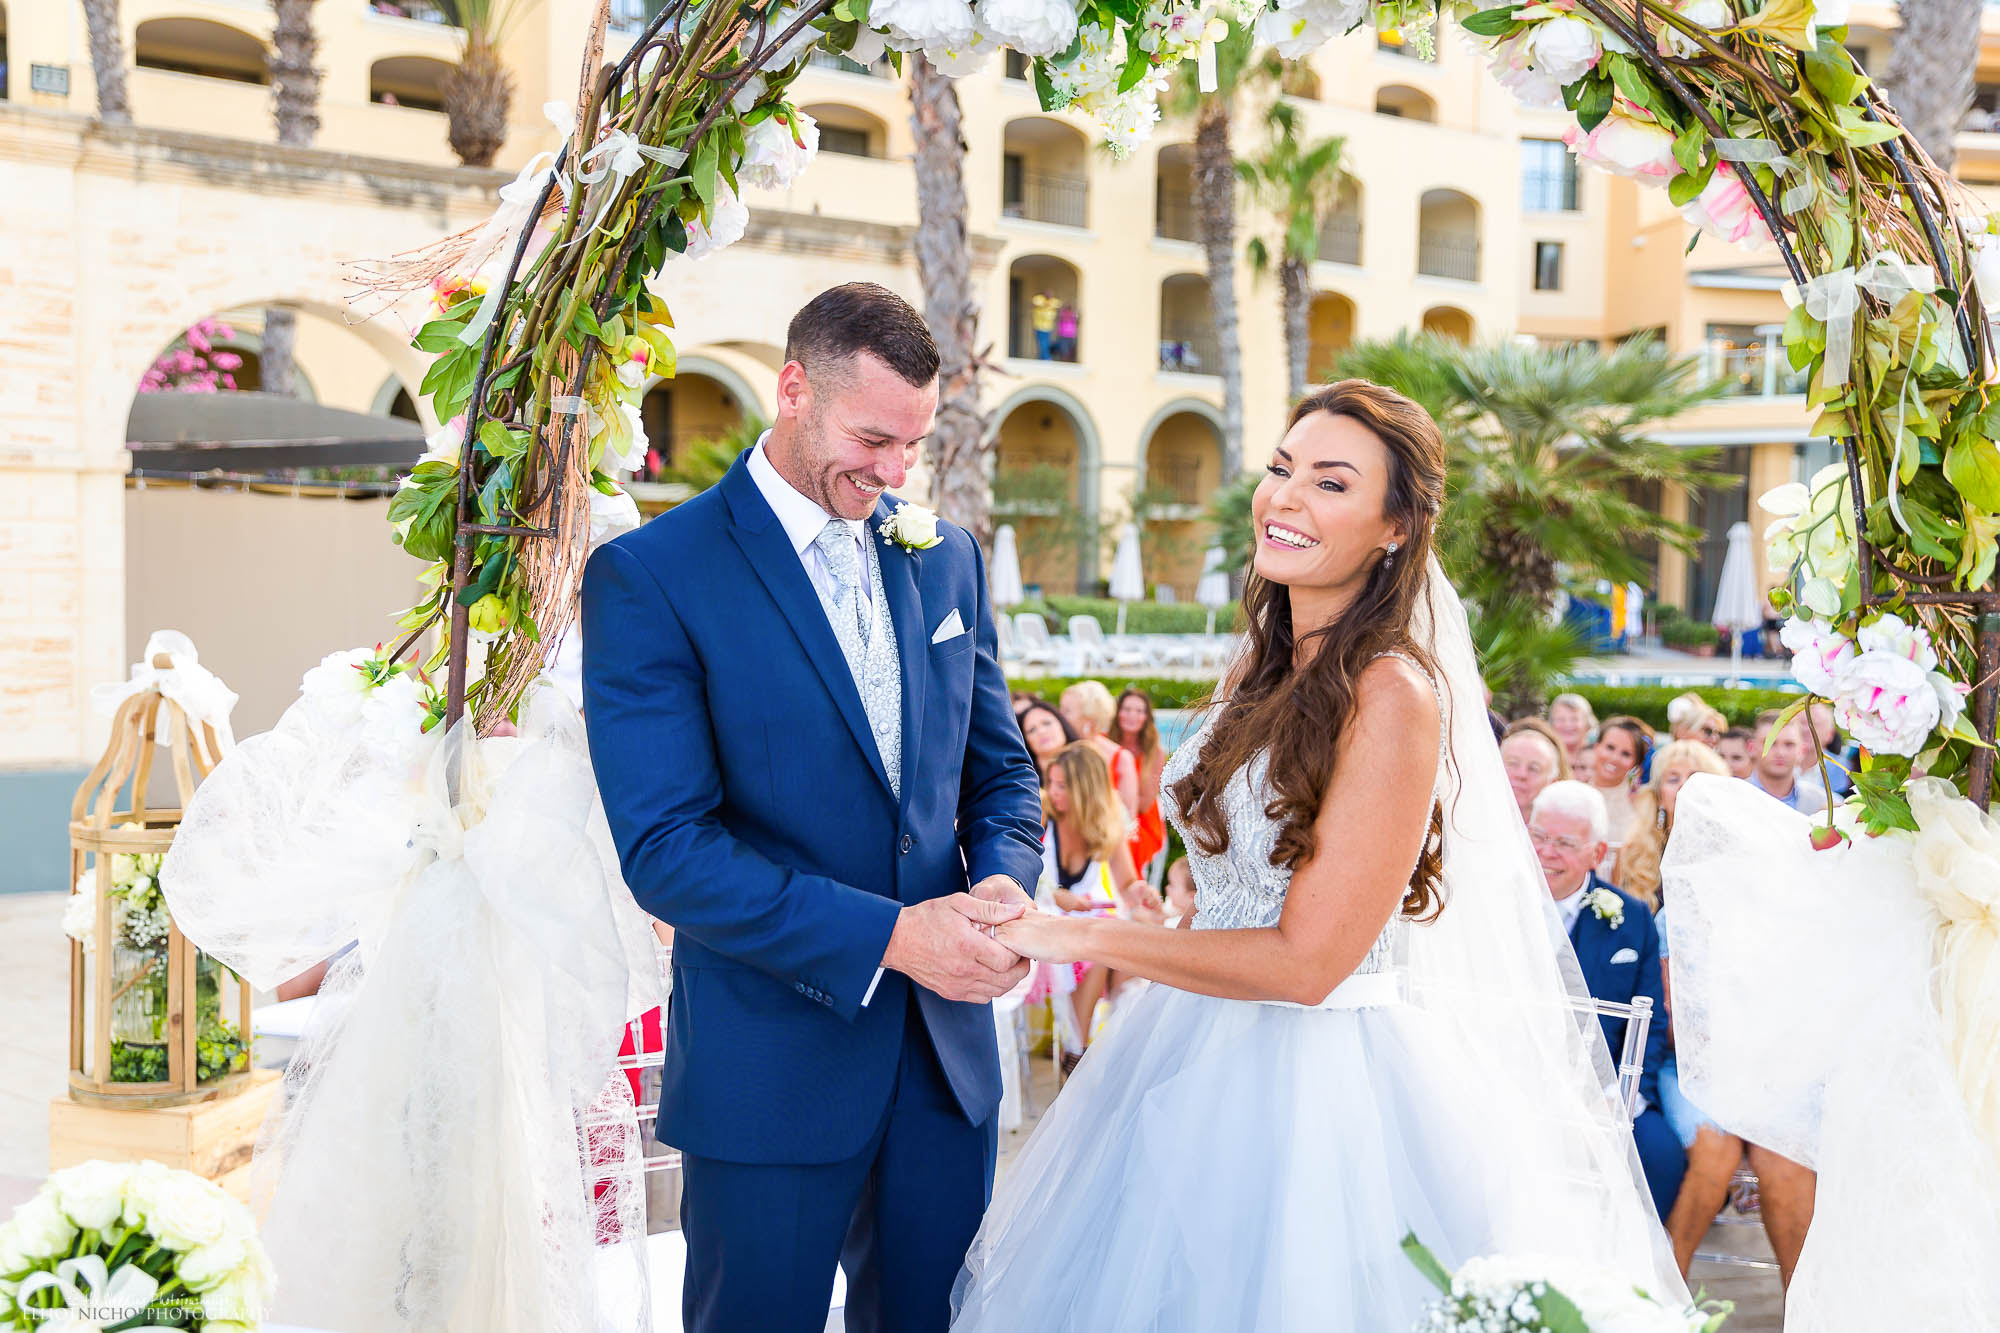 Groom exchanges the rings with his bride in her blue wedding dress.